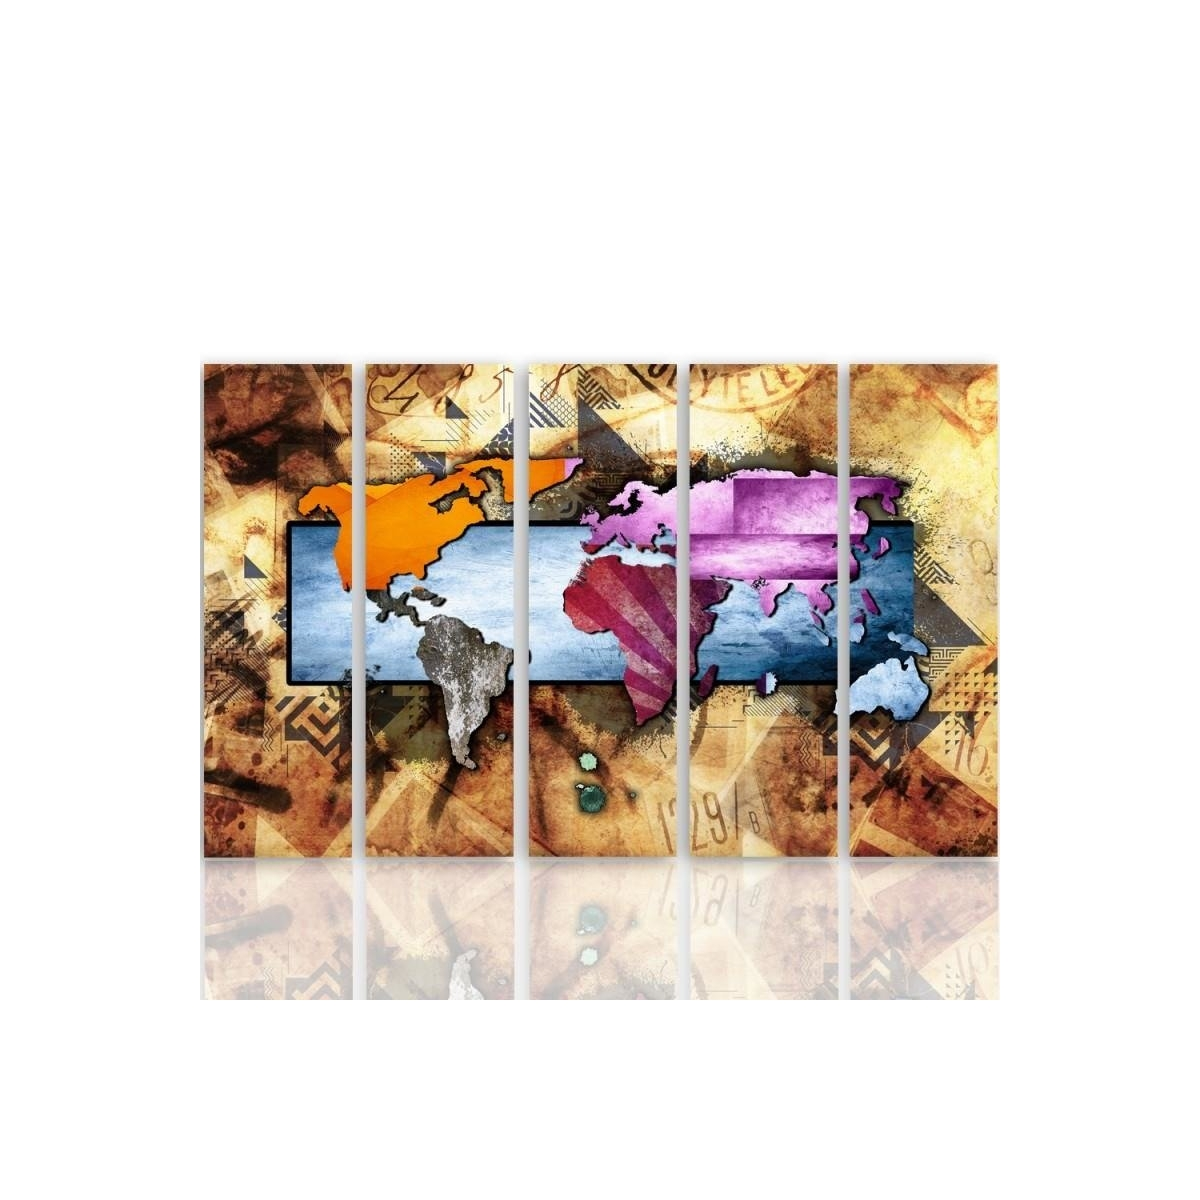 Five Part Picture On Canvas, Pentaptych, Type C, With A World Map Composition 6100x150